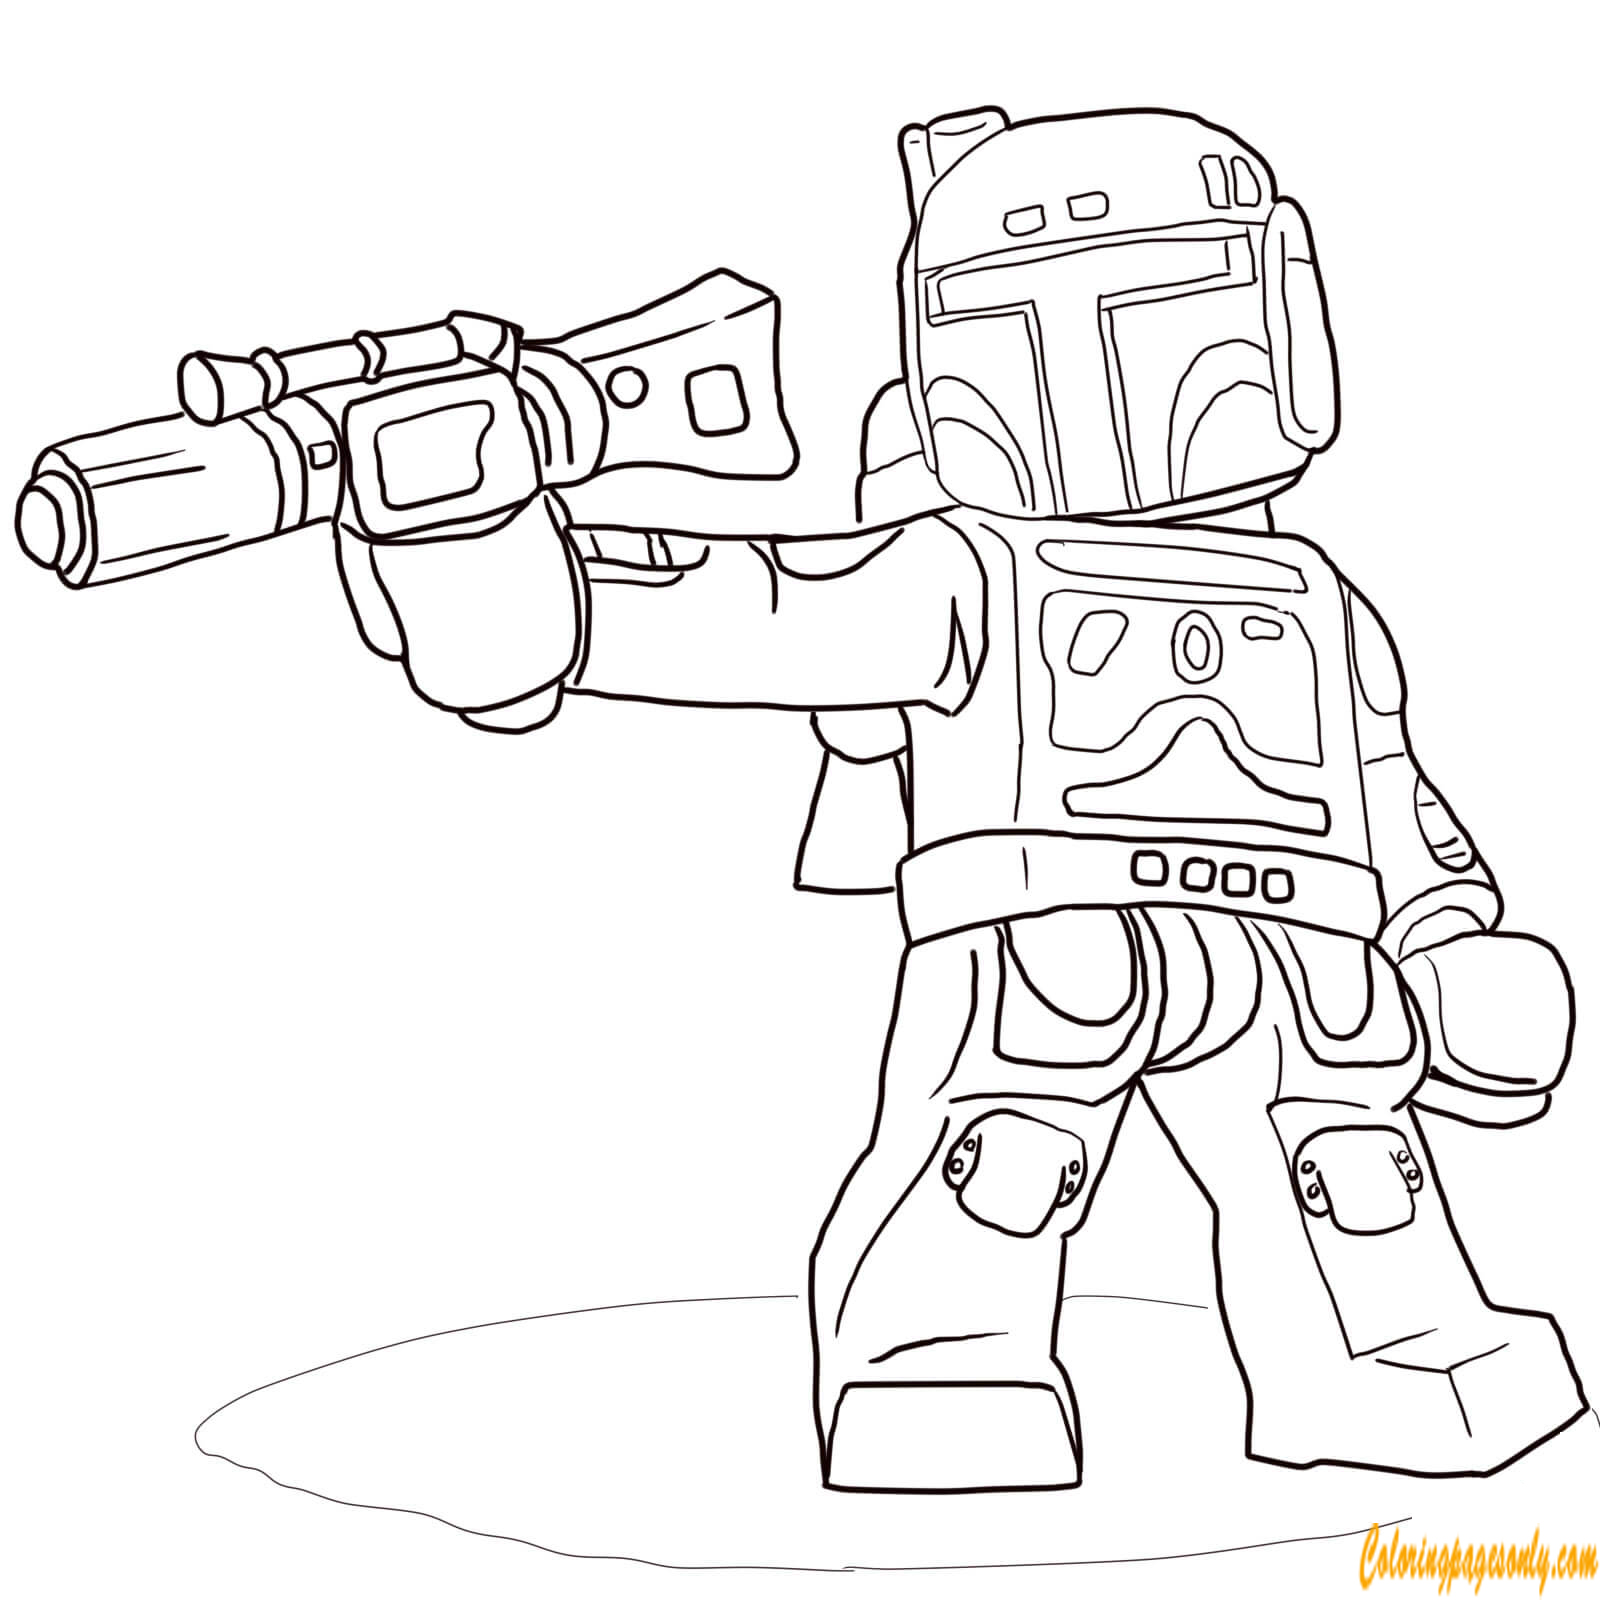 Boba Fett From Lego Star Wars Coloring Page Free Coloring Pages Online